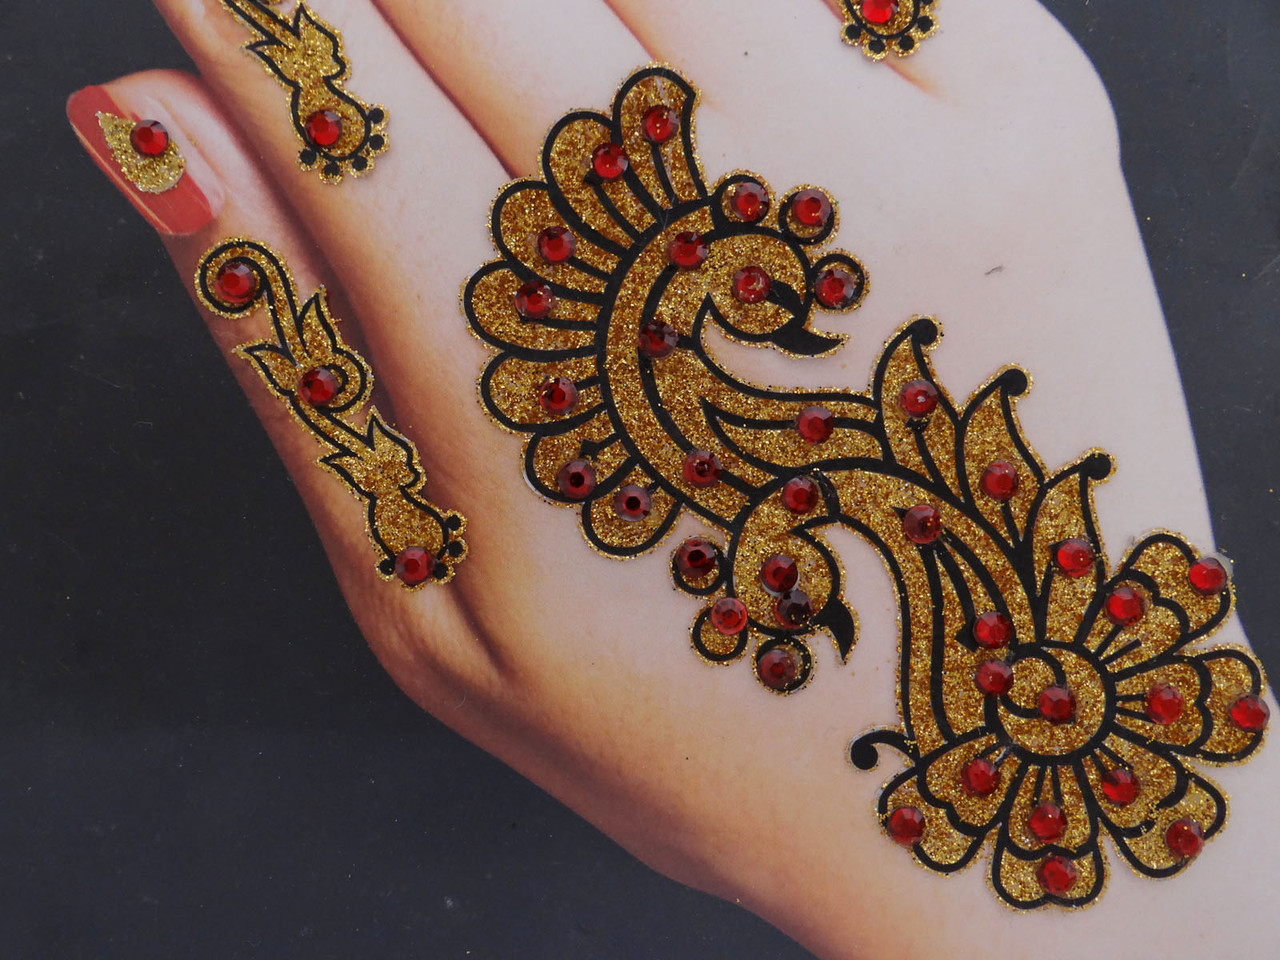 India Cz Mehandi Sticker Temporary Women Self Adhesive Body Art Tattoo Removable Beauty